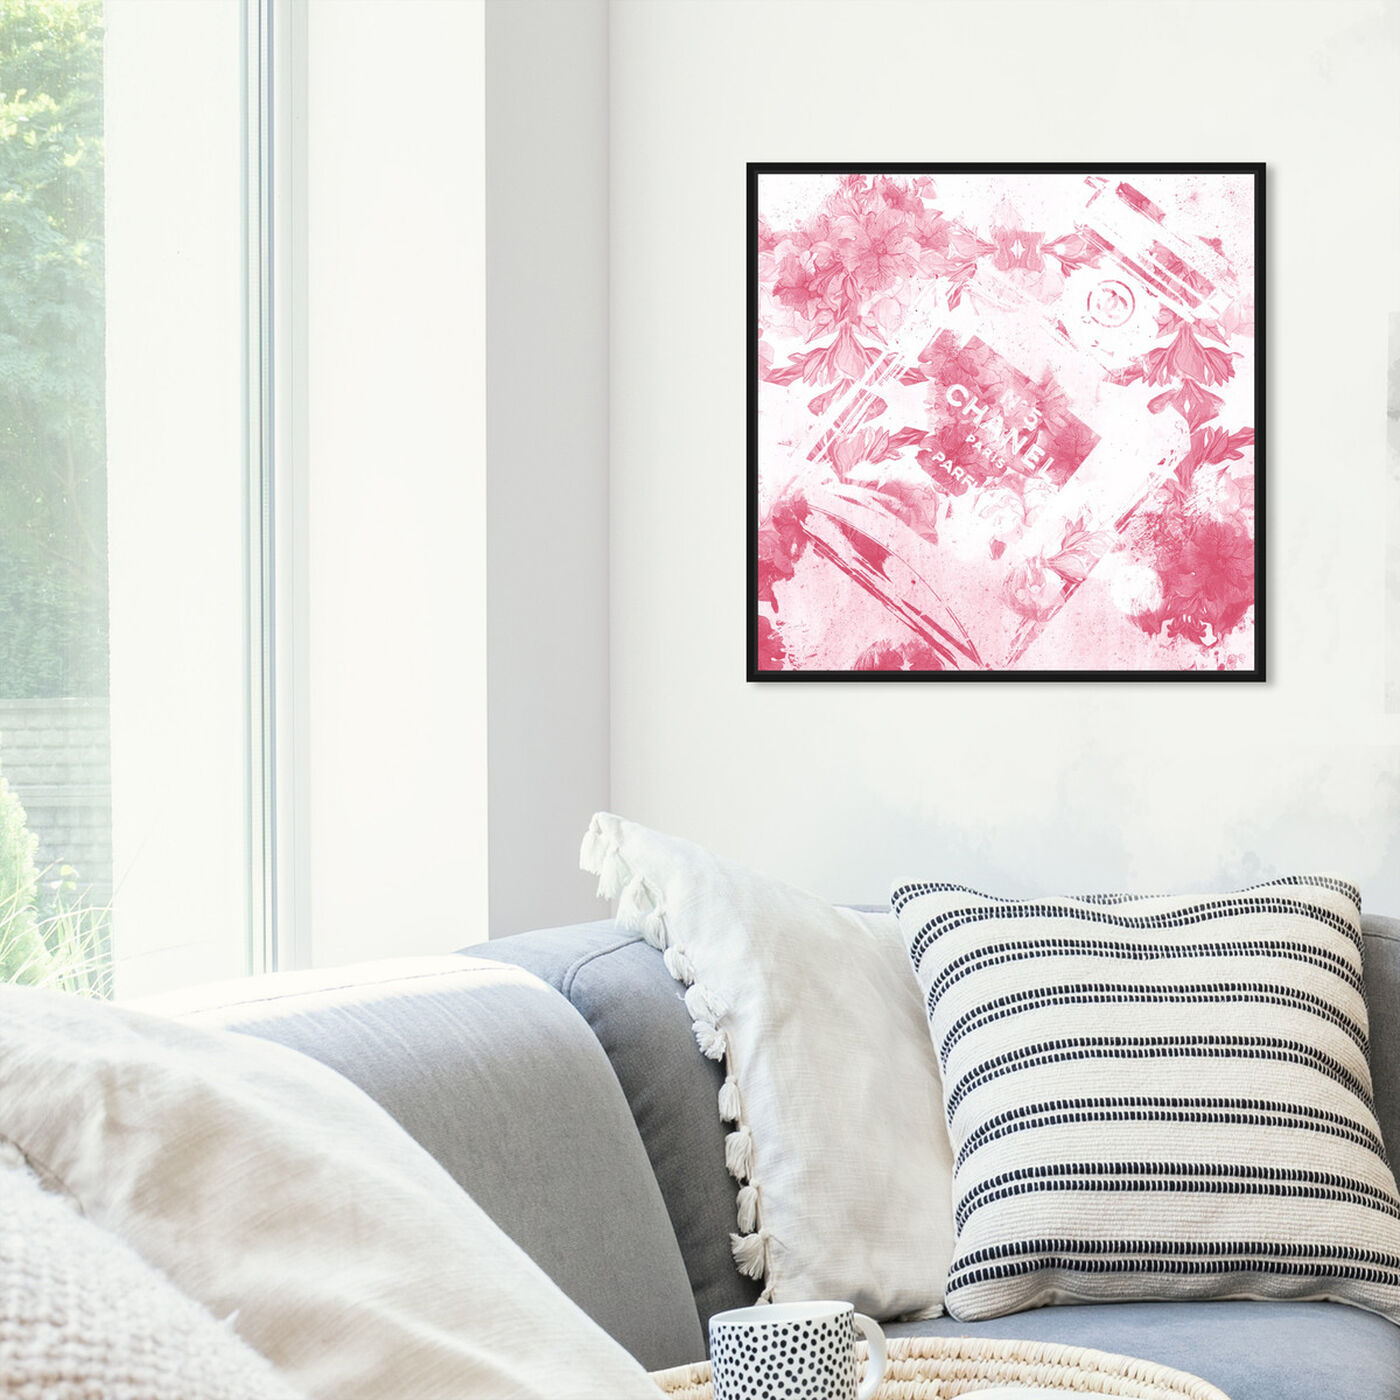 Hanging view of Blush Flower Scent featuring fashion and glam and perfumes art.